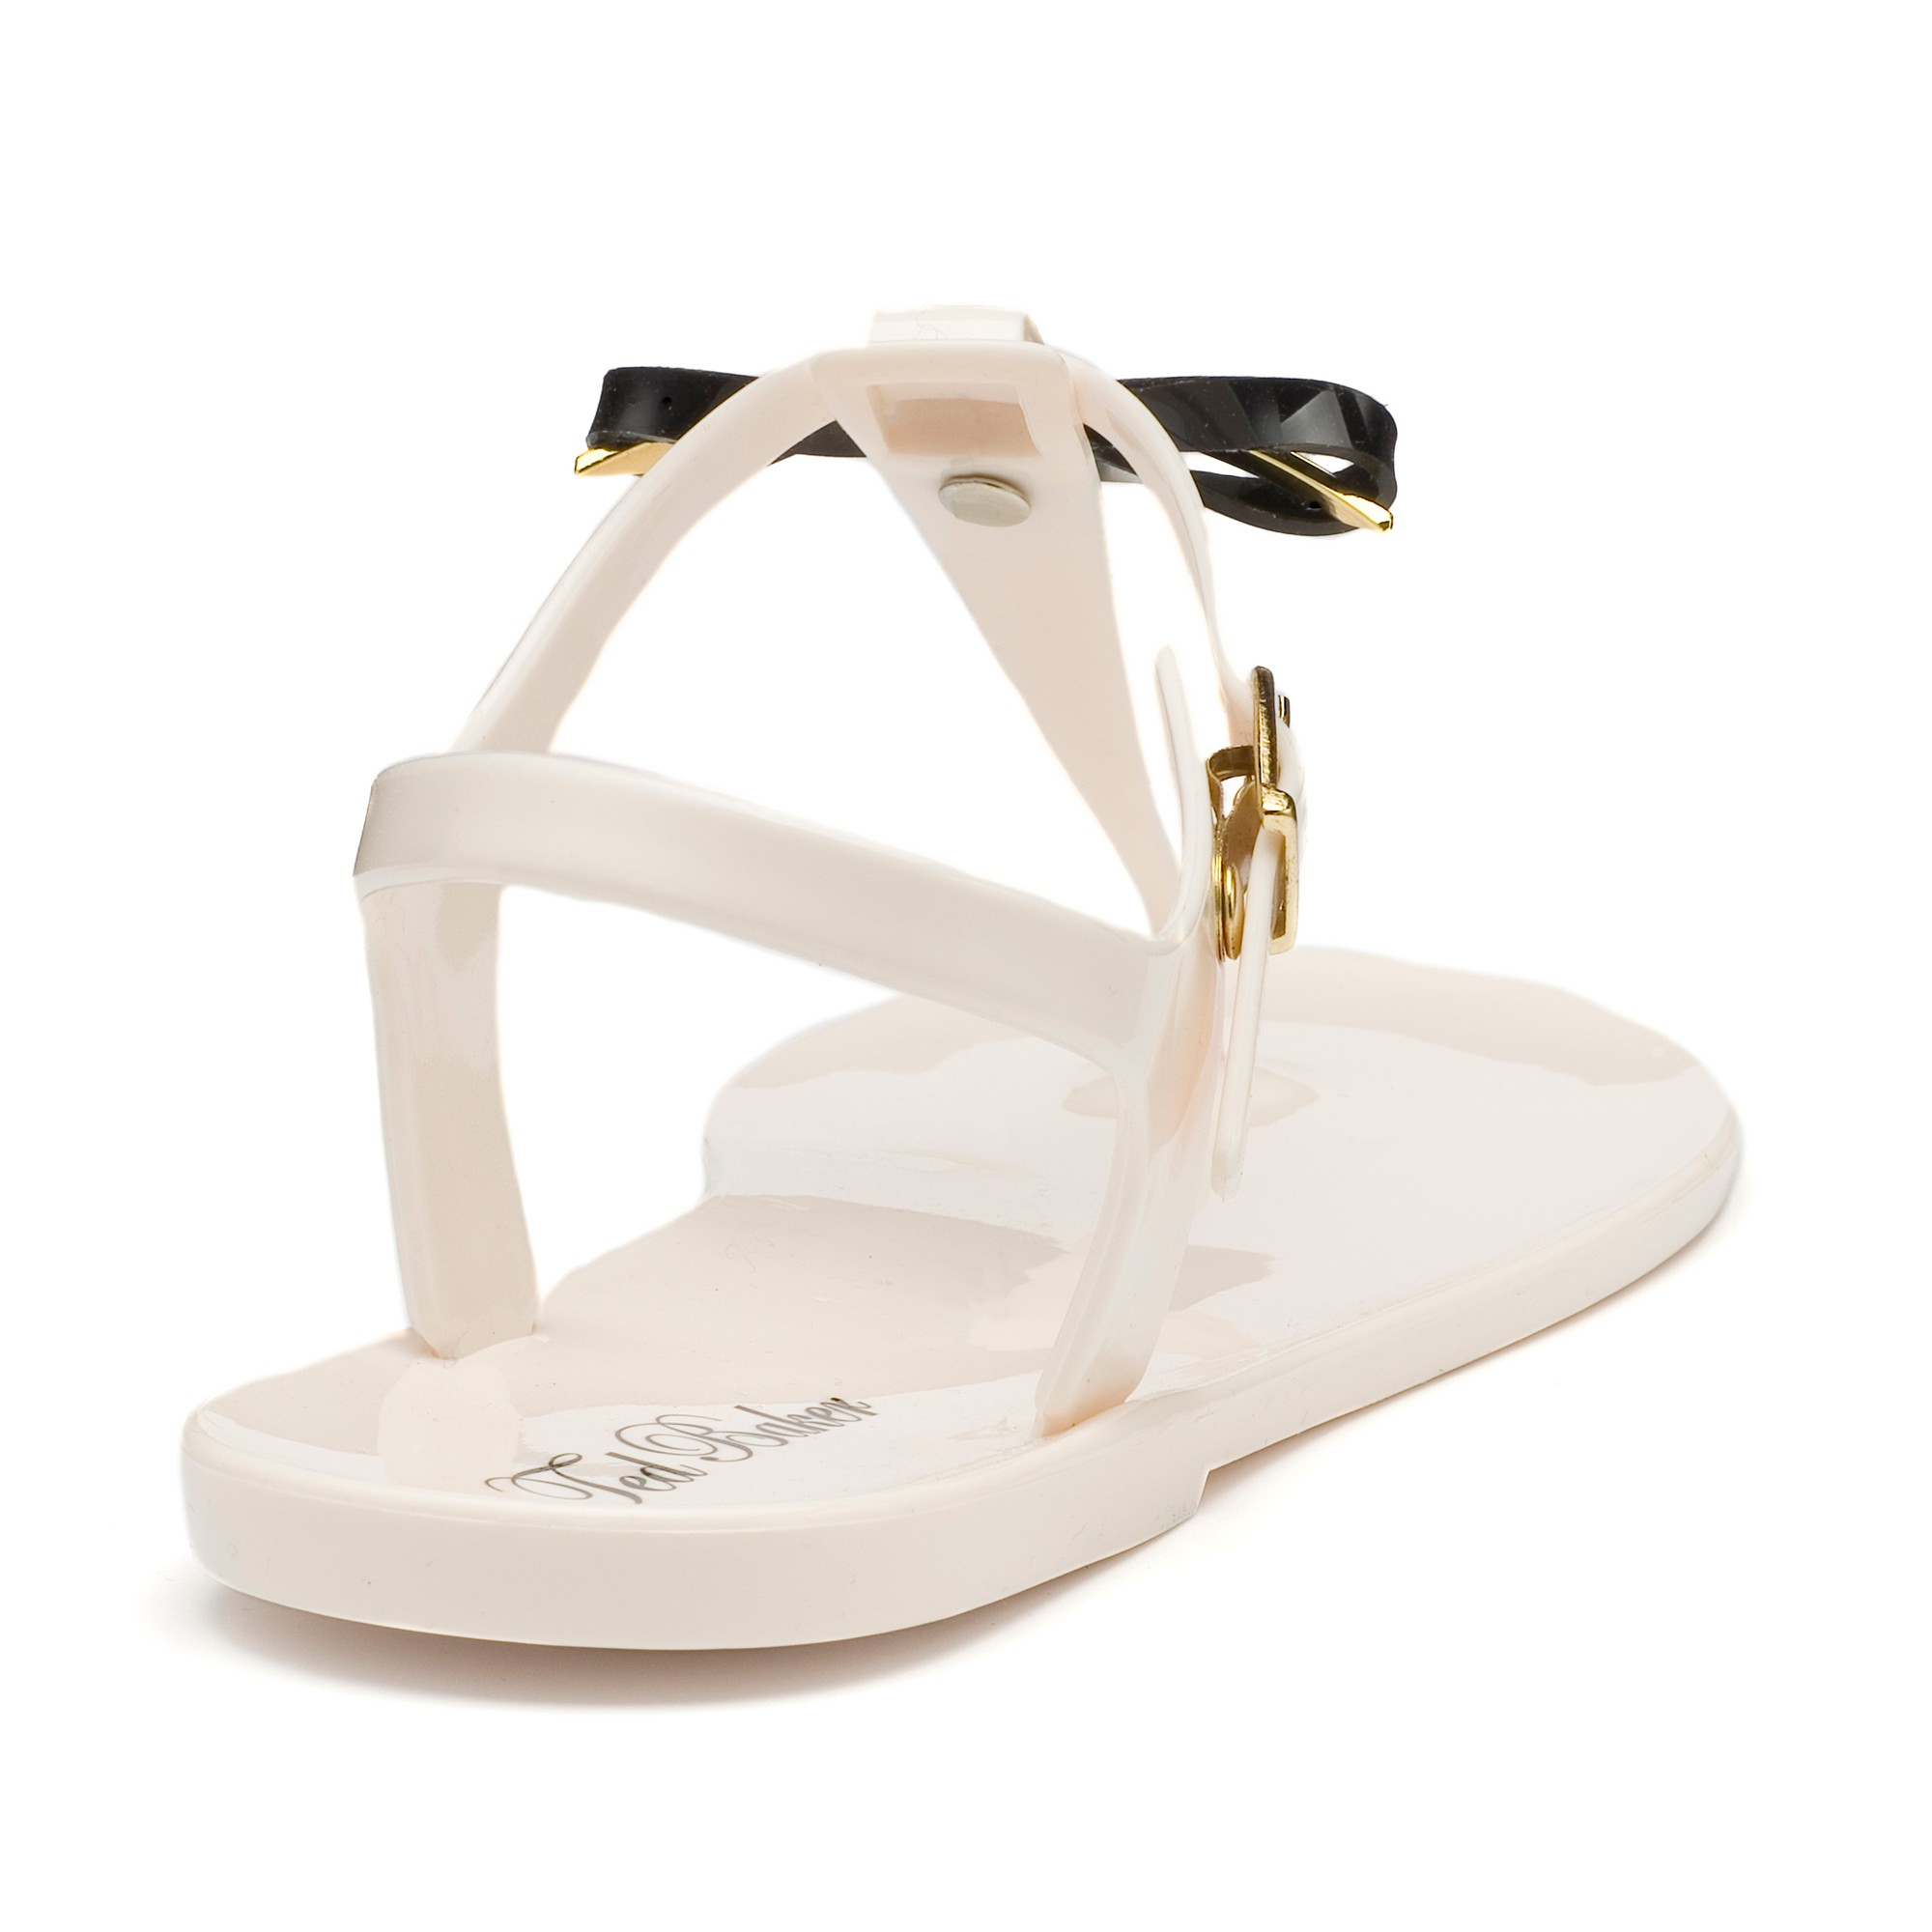 80d85be8fadca3 Ted Baker Verona Jelly T-bar Sandals in Natural - Lyst